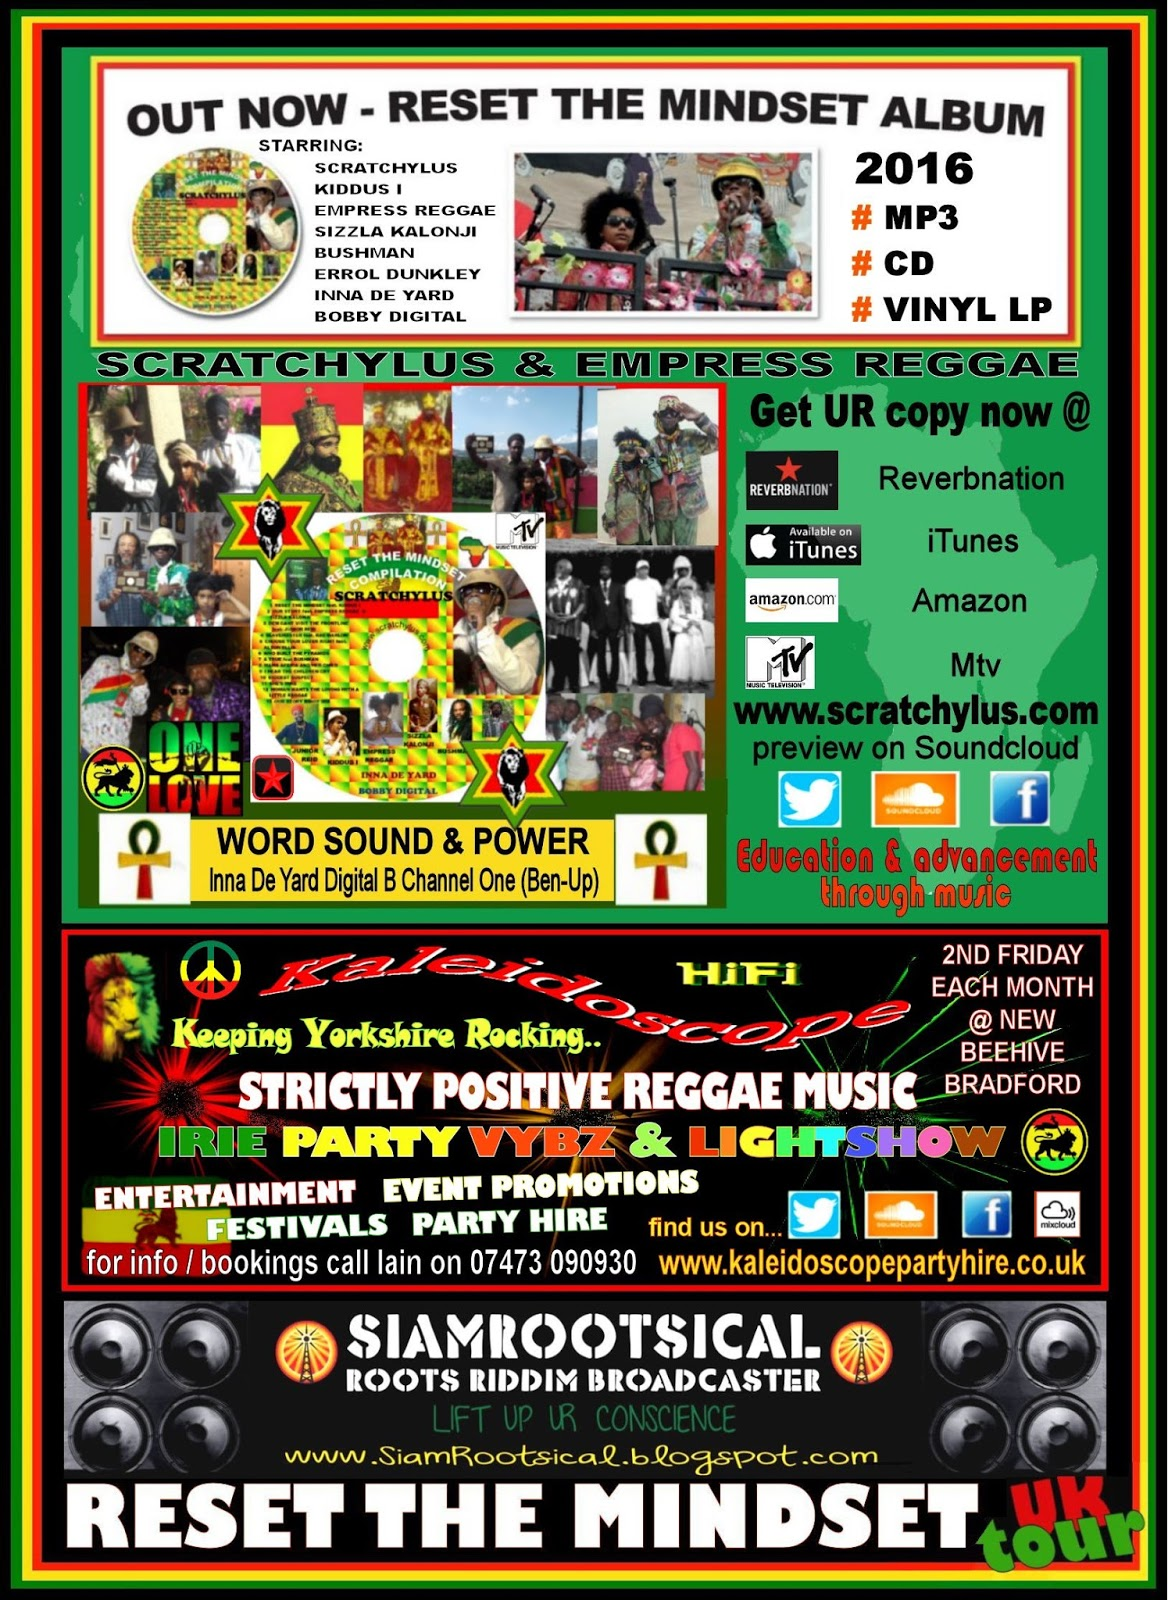 Siamrootsical Roots Riddim Broadcaster Scratchylus